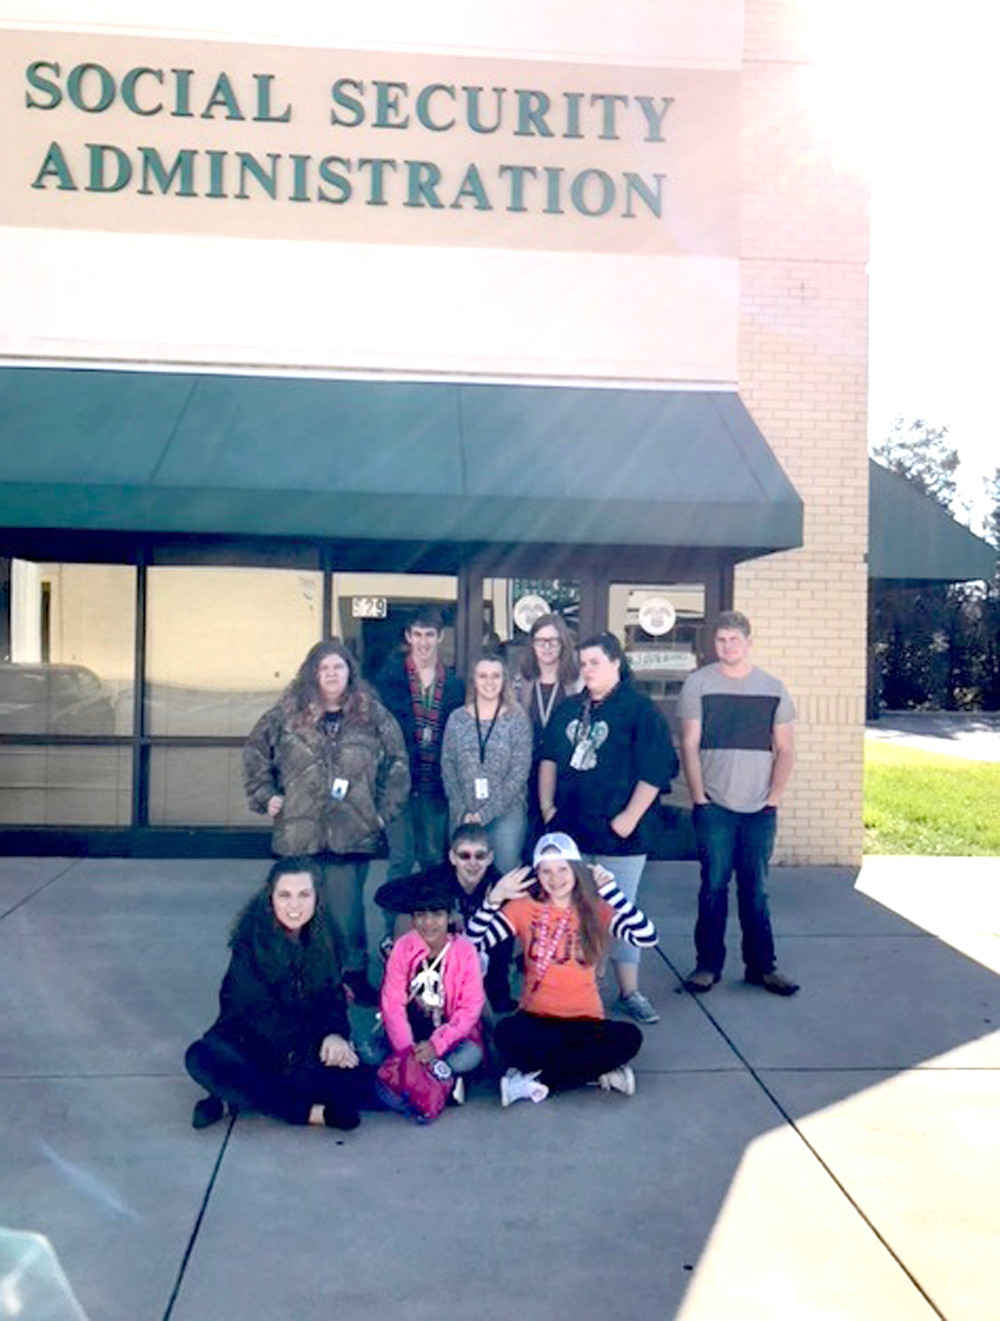 CLEVELAND'S Social Security Administration office was a stop on a field trip taken by Walker Valley High School students.